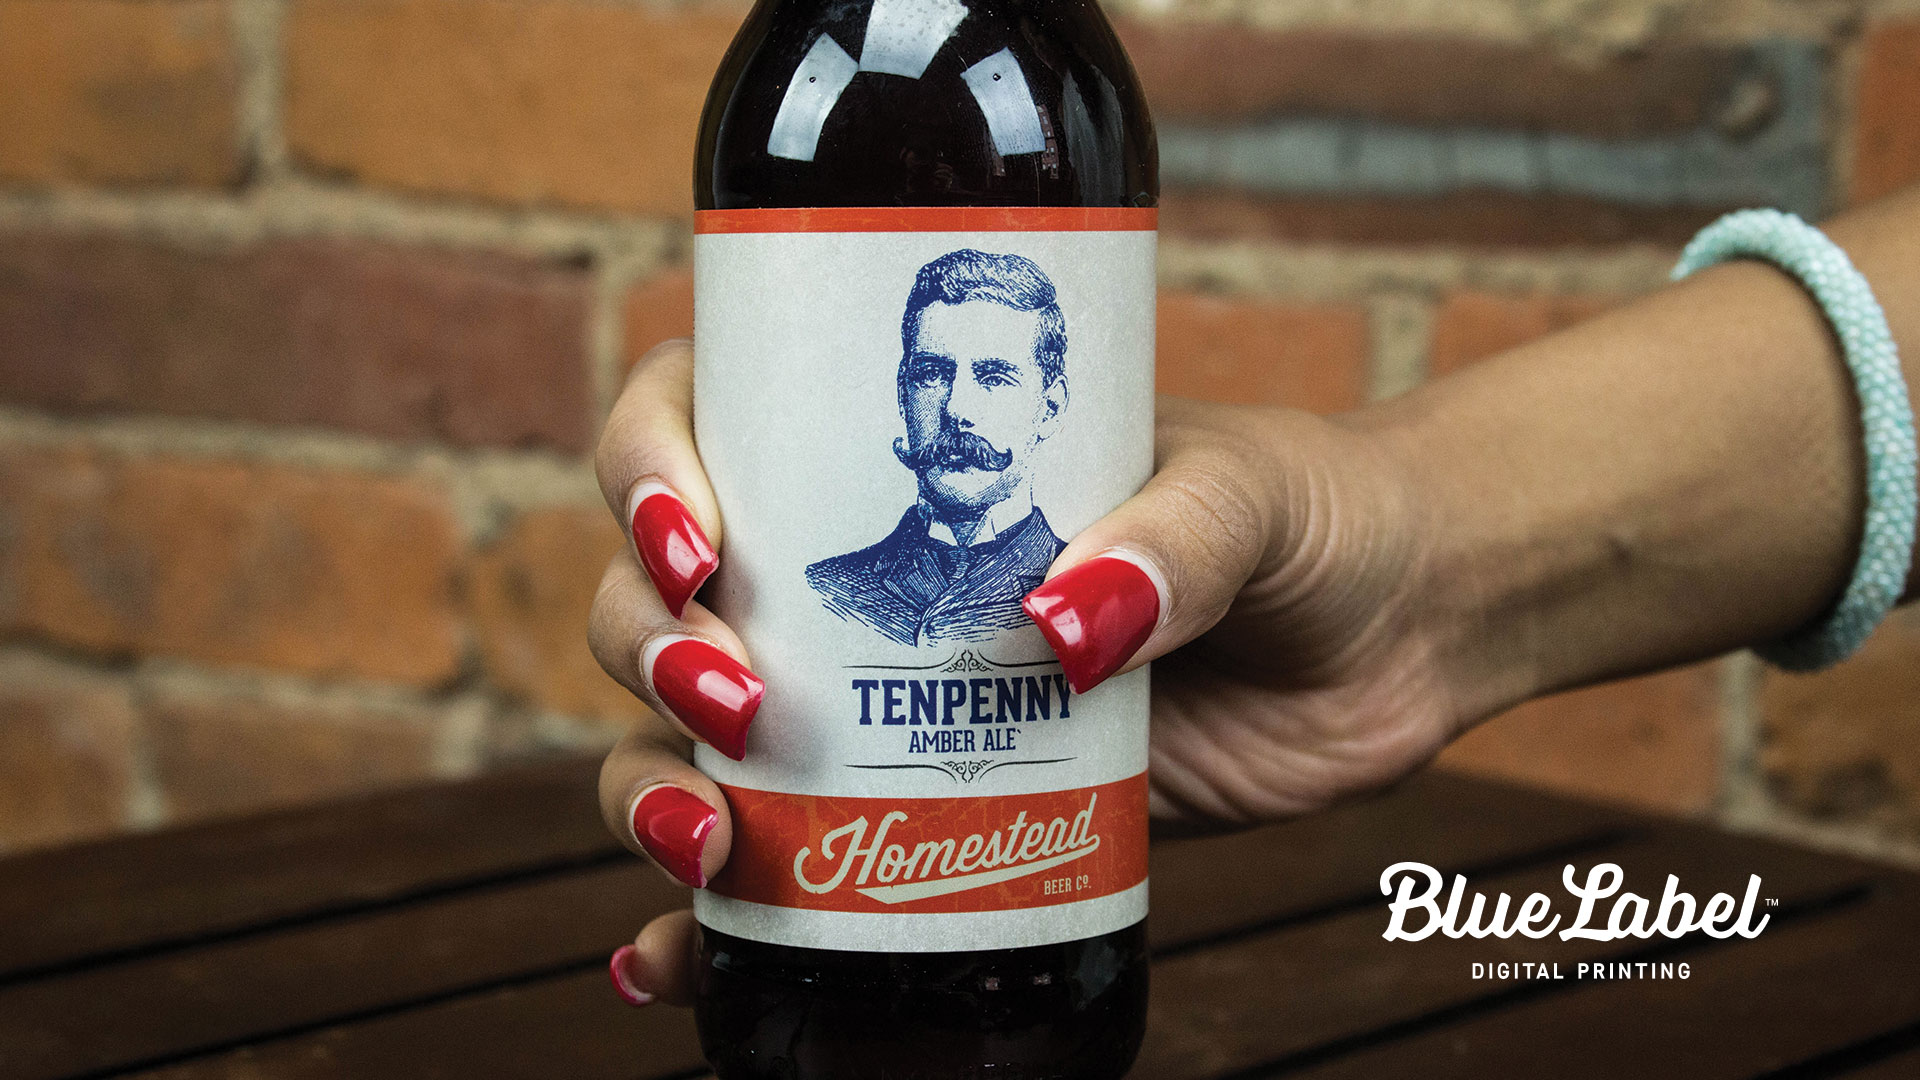 Bottle label featuring a hand-drawn illustration.